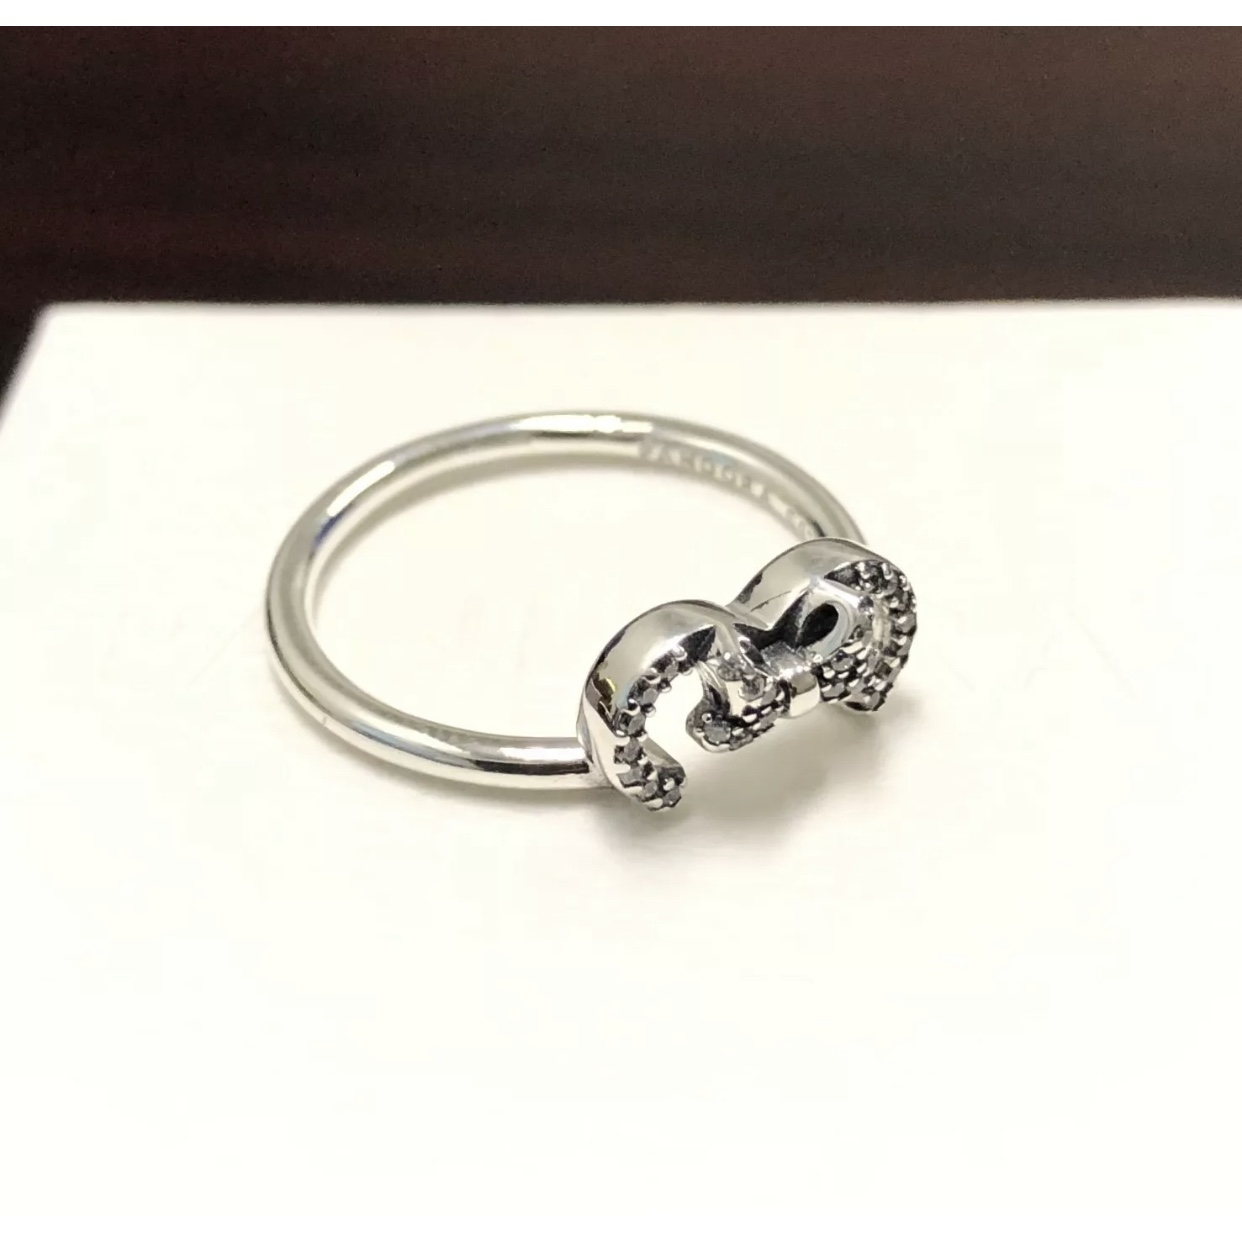 Disney's Pandora Minnie Mouse Silhouette Ring ~ – Depop Throughout Most Recent Disney Minnie Silhouette Rings (Gallery 3 of 25)